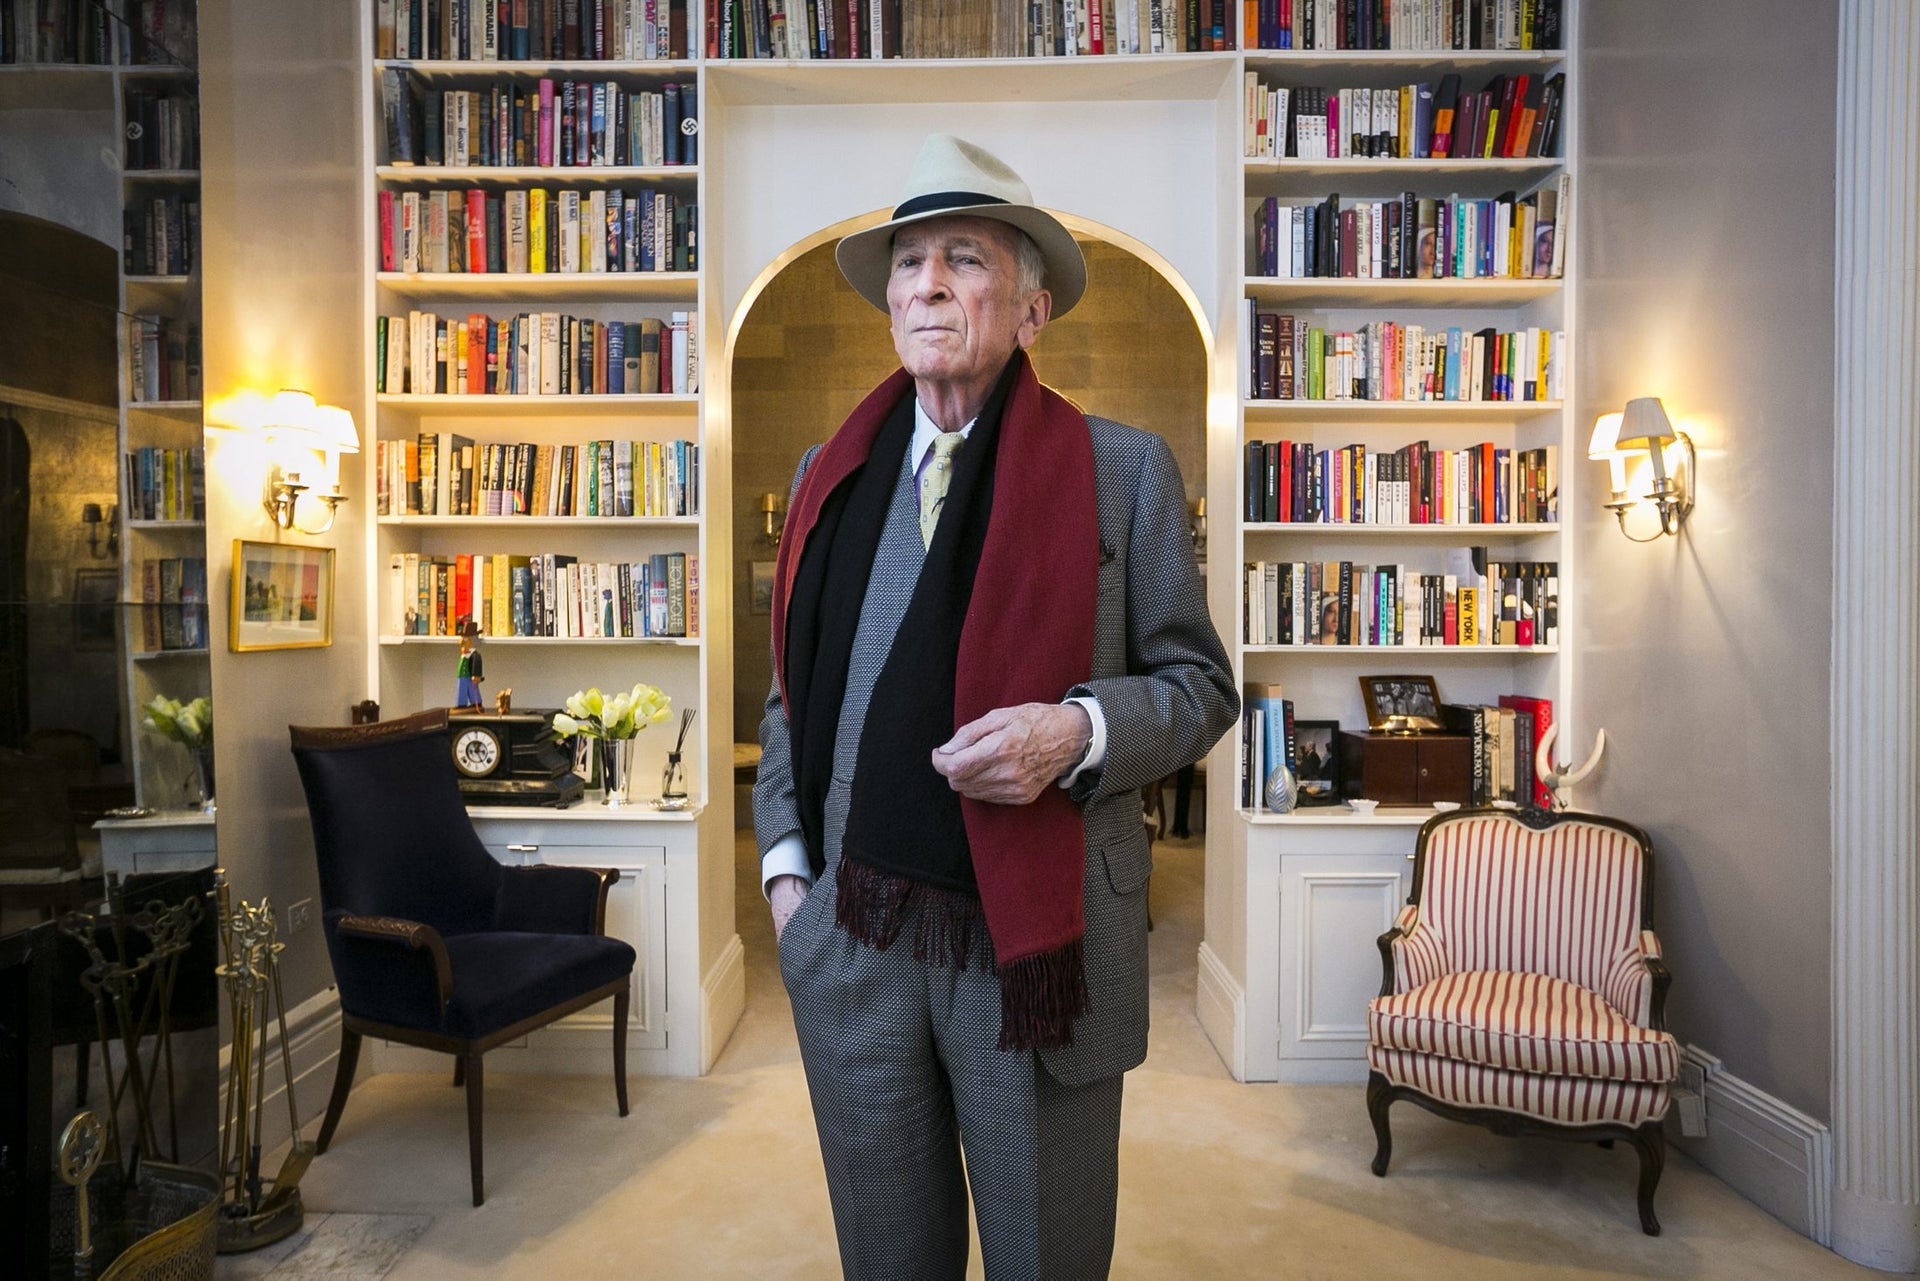 Gay Talese poses for a portrait at his home in Midtown Manhattan, December 13, 2016.